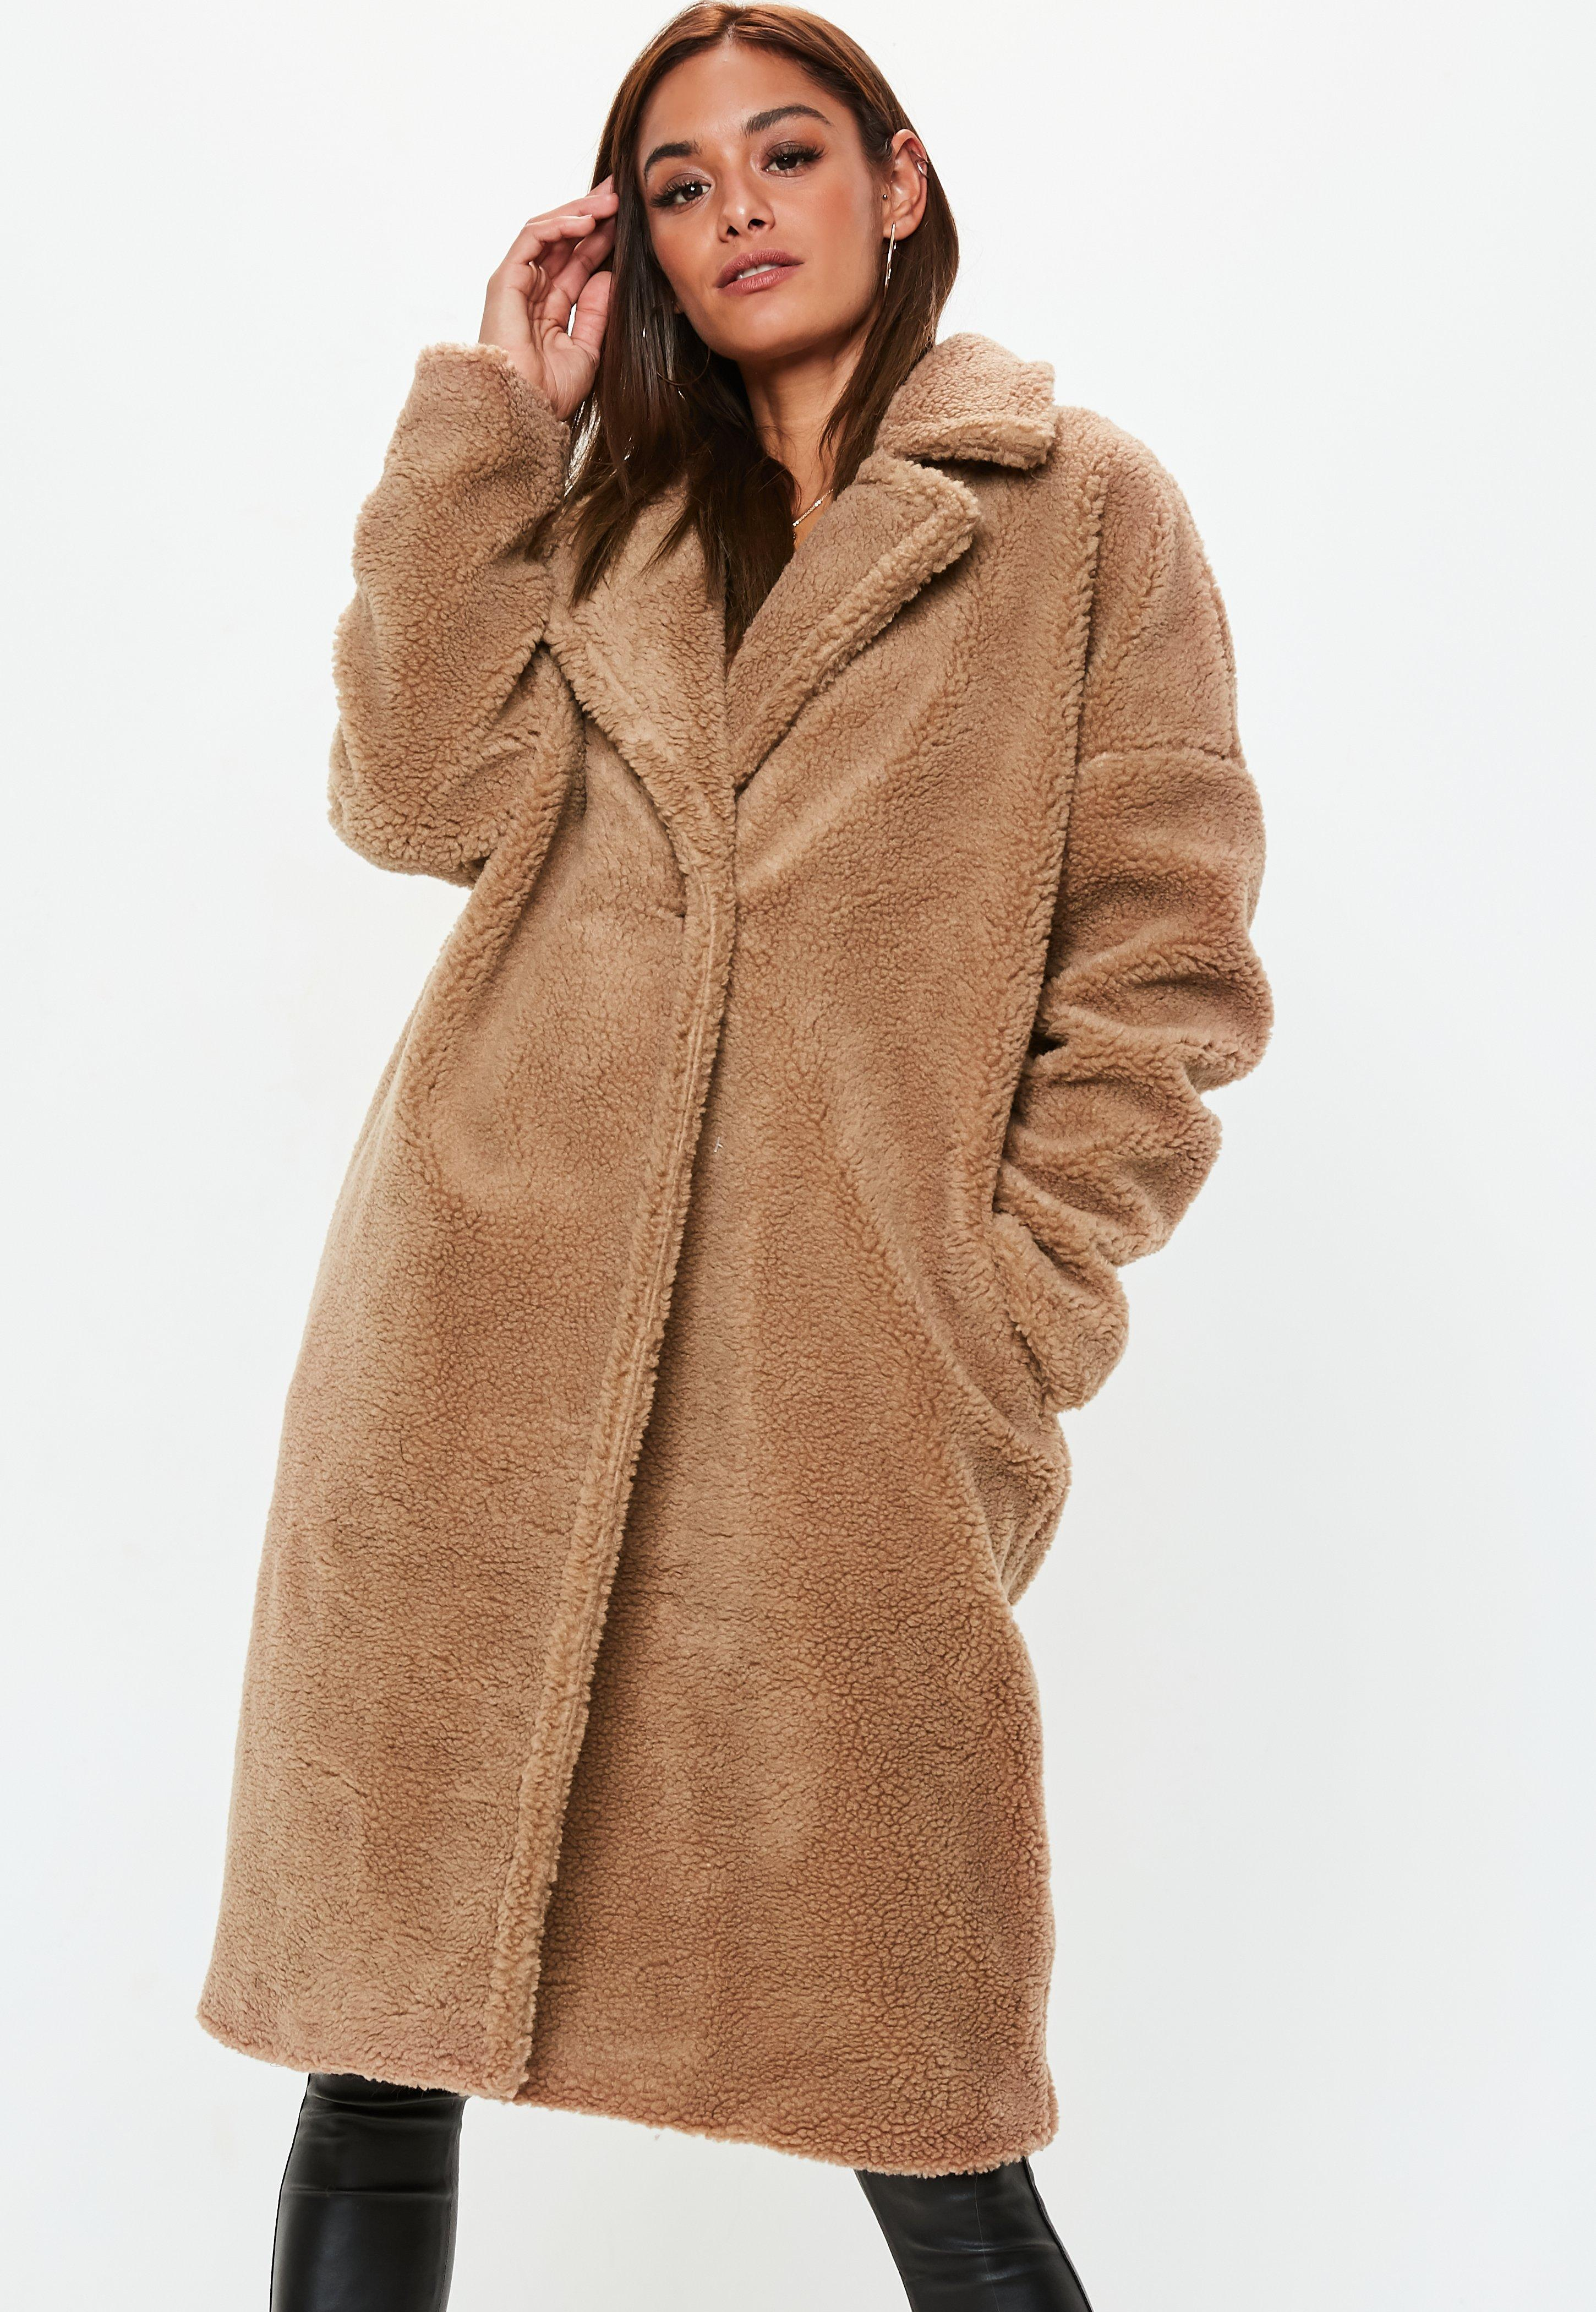 023a11de4b296 Missguided - Natural Camel Chunky Borg Teddy Coat - Lyst. View fullscreen